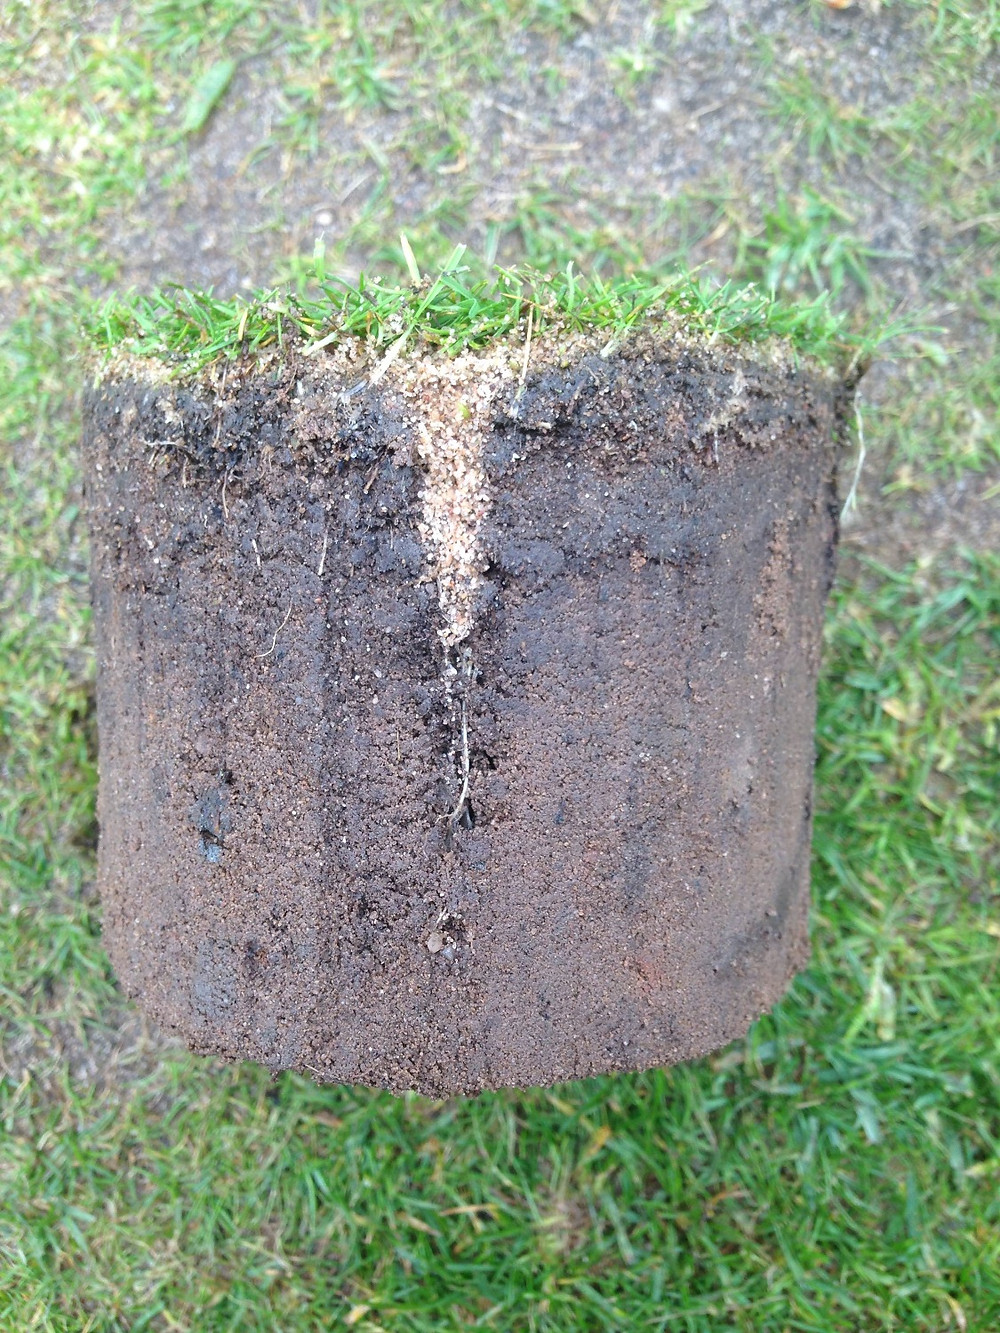 Sand channel after hollow core aeration and top-dressing